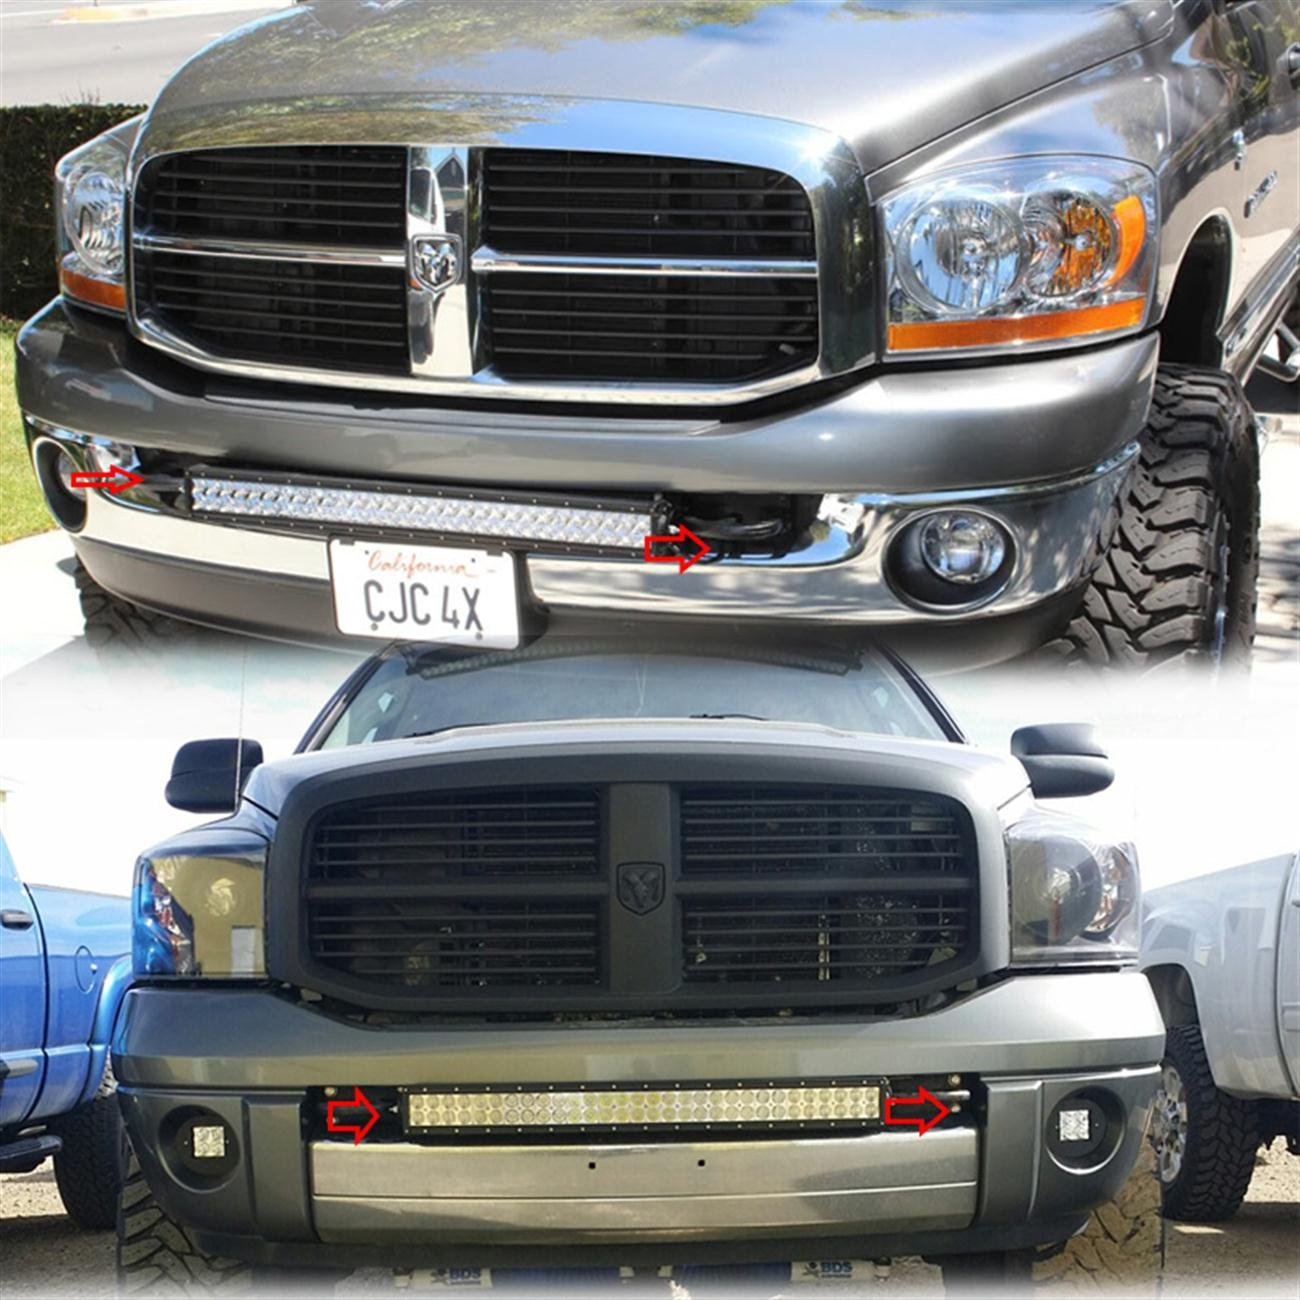 20 22 led light bar bumper mount brackets kit for 09 16 dodge ram 20 22 led light bar bumper mount brackets kit for 03 16 dodge ram 25003500 aloadofball